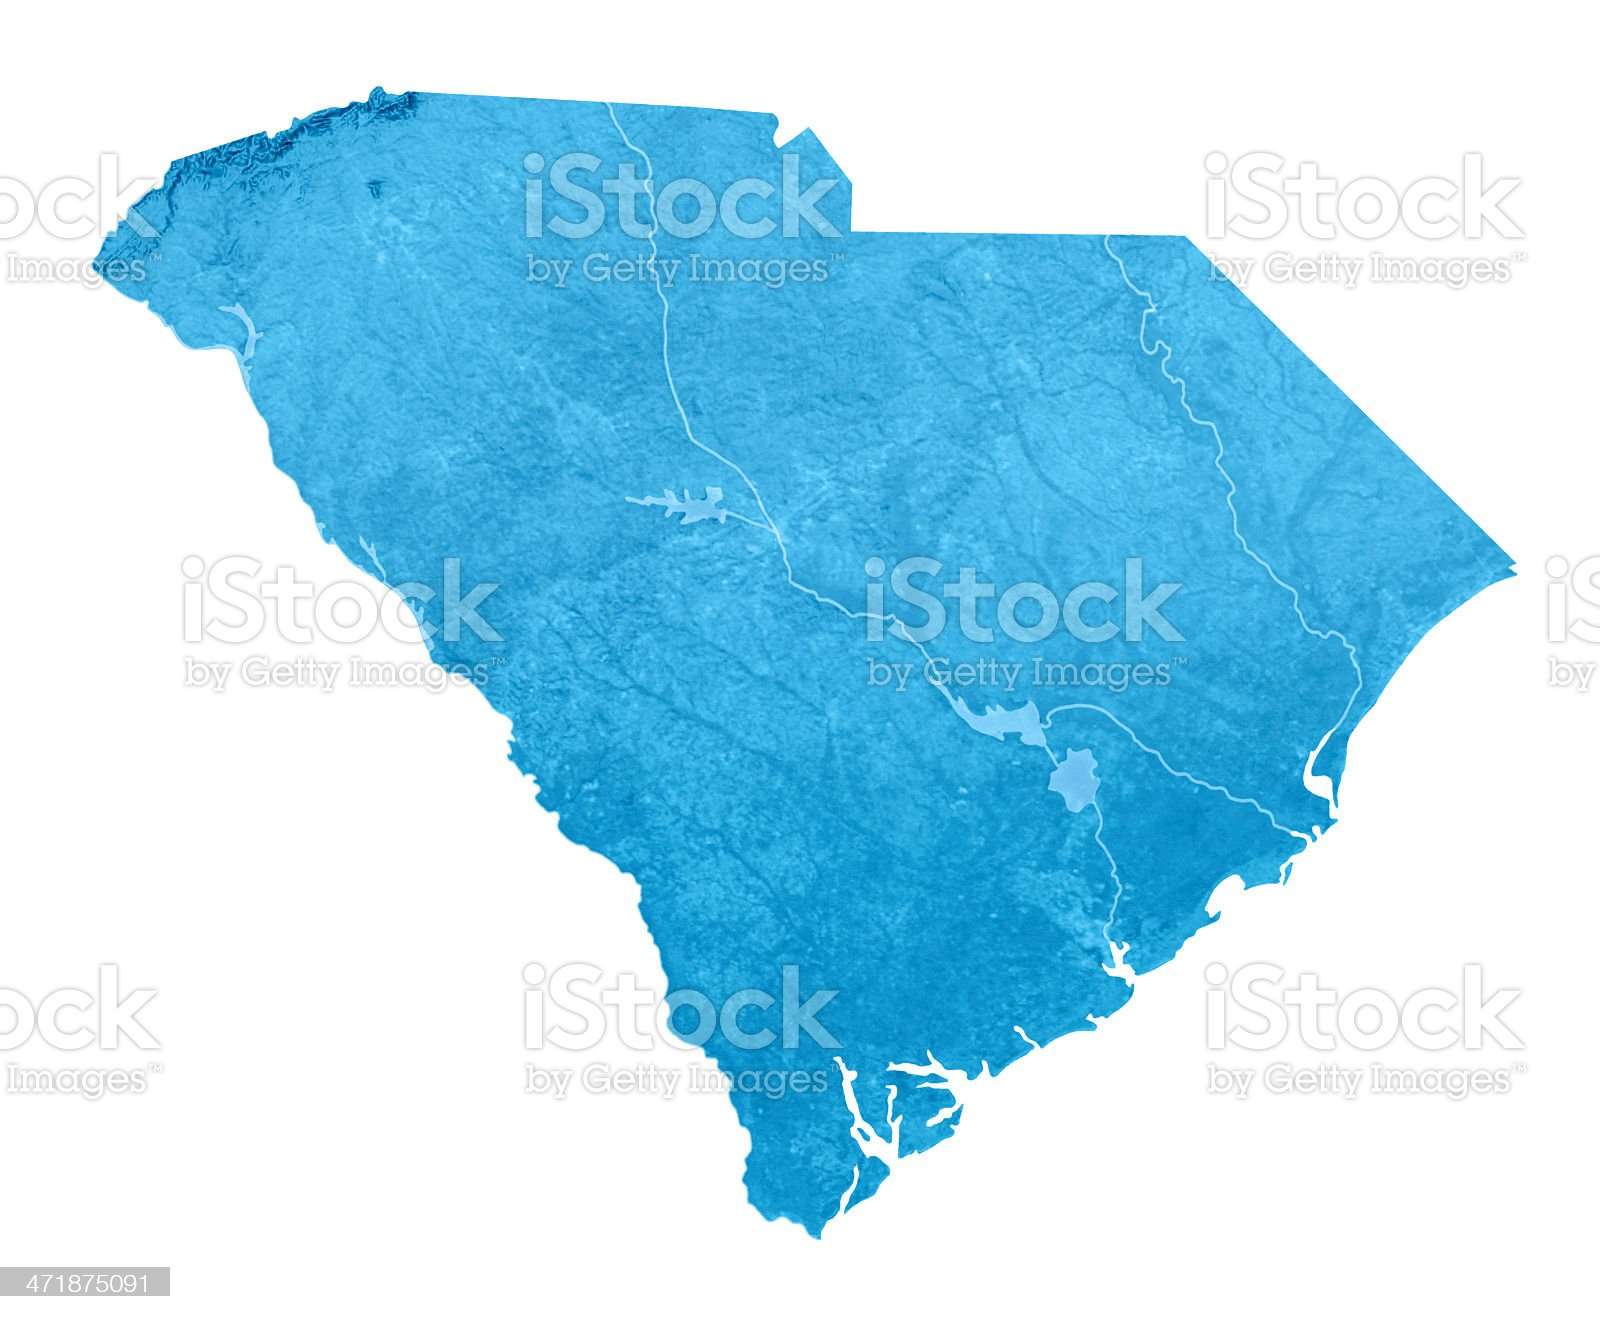 South Carolina Topographic Map Isolated royalty-free stock photo